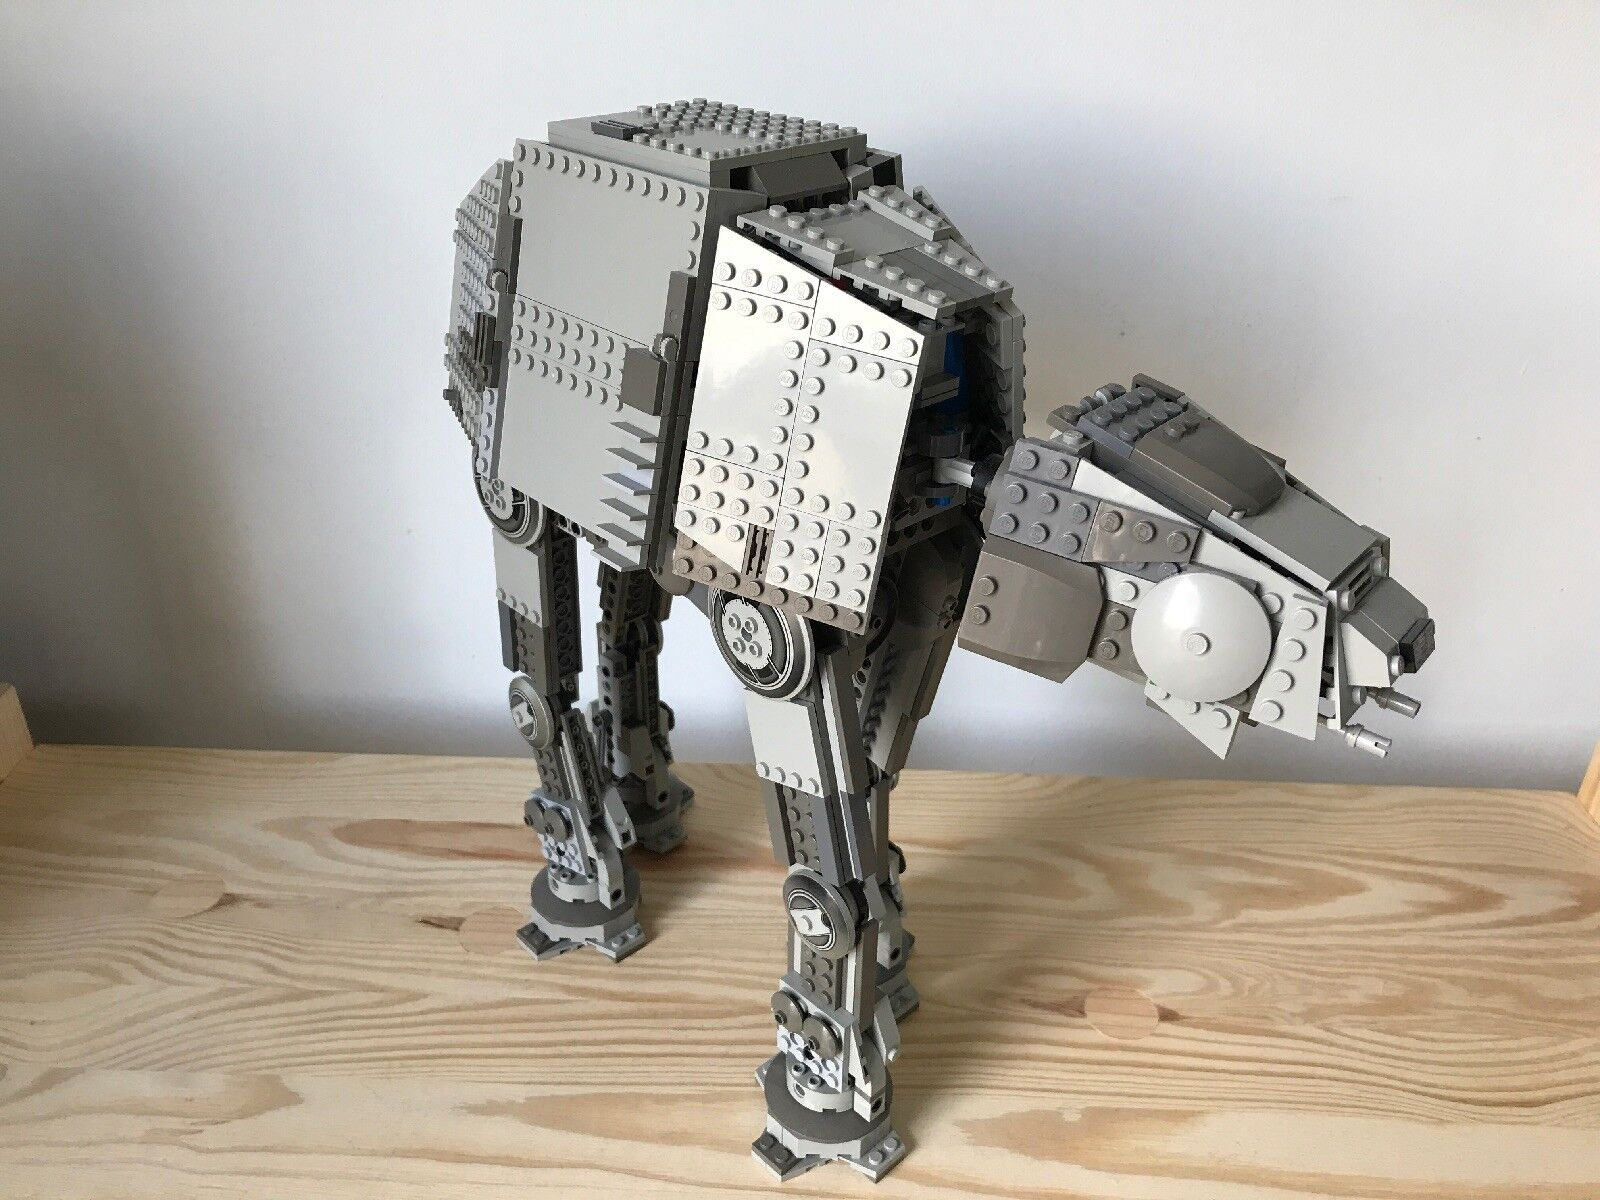 Lego Star Wars Wars Wars AT-AT ( 4483 ) Inkl Anleitung Schwarze Edition 21e57e